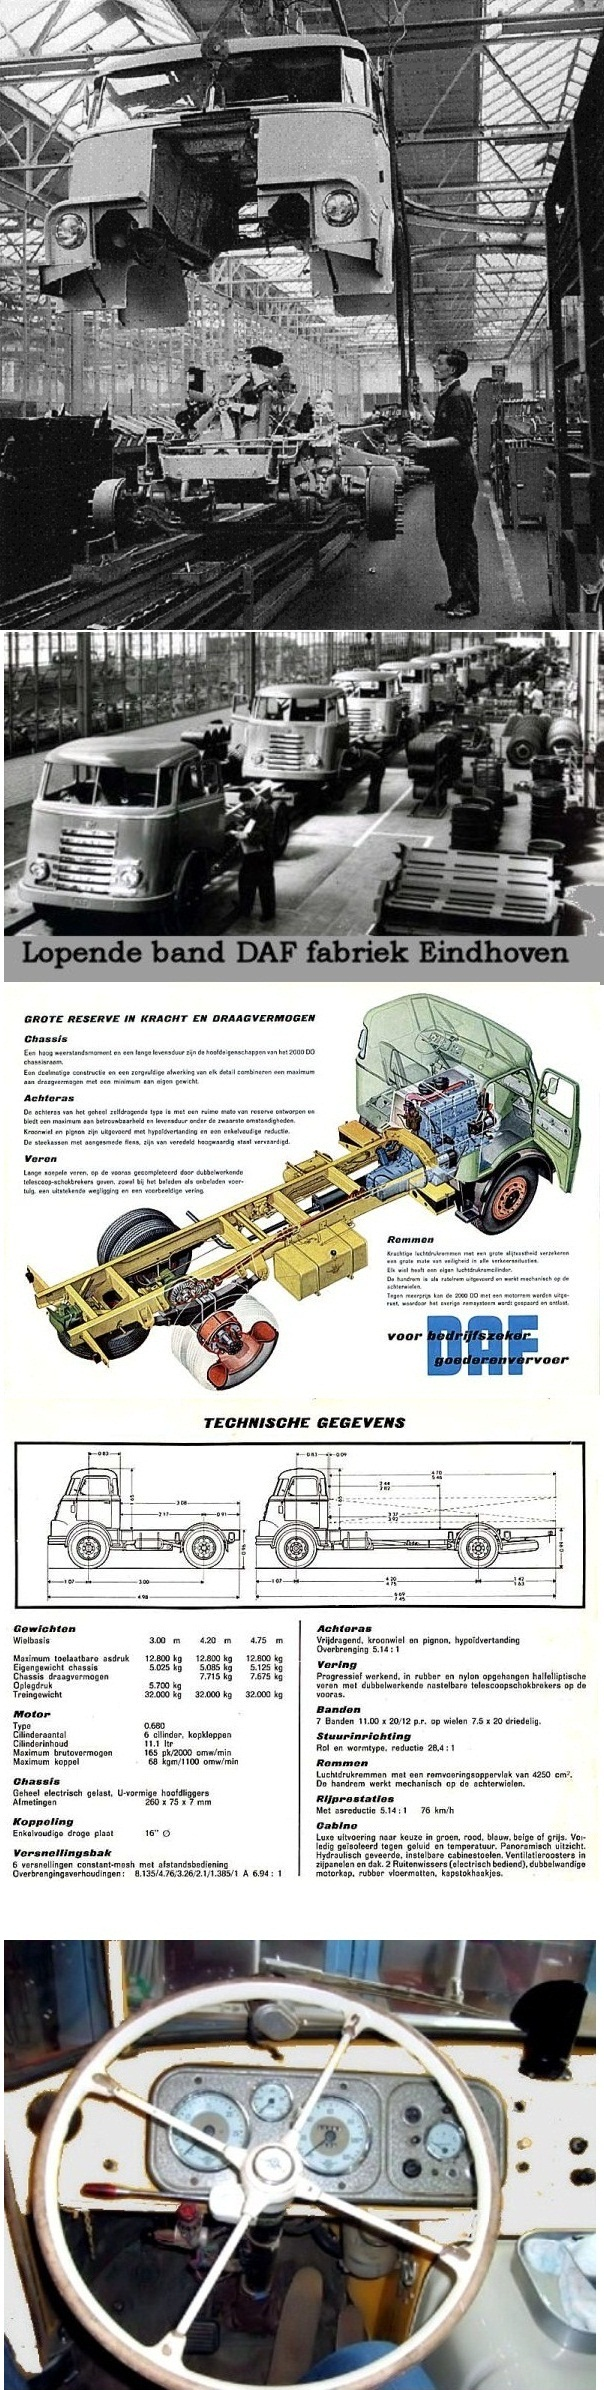 DAF Fabriek 1.jpeg